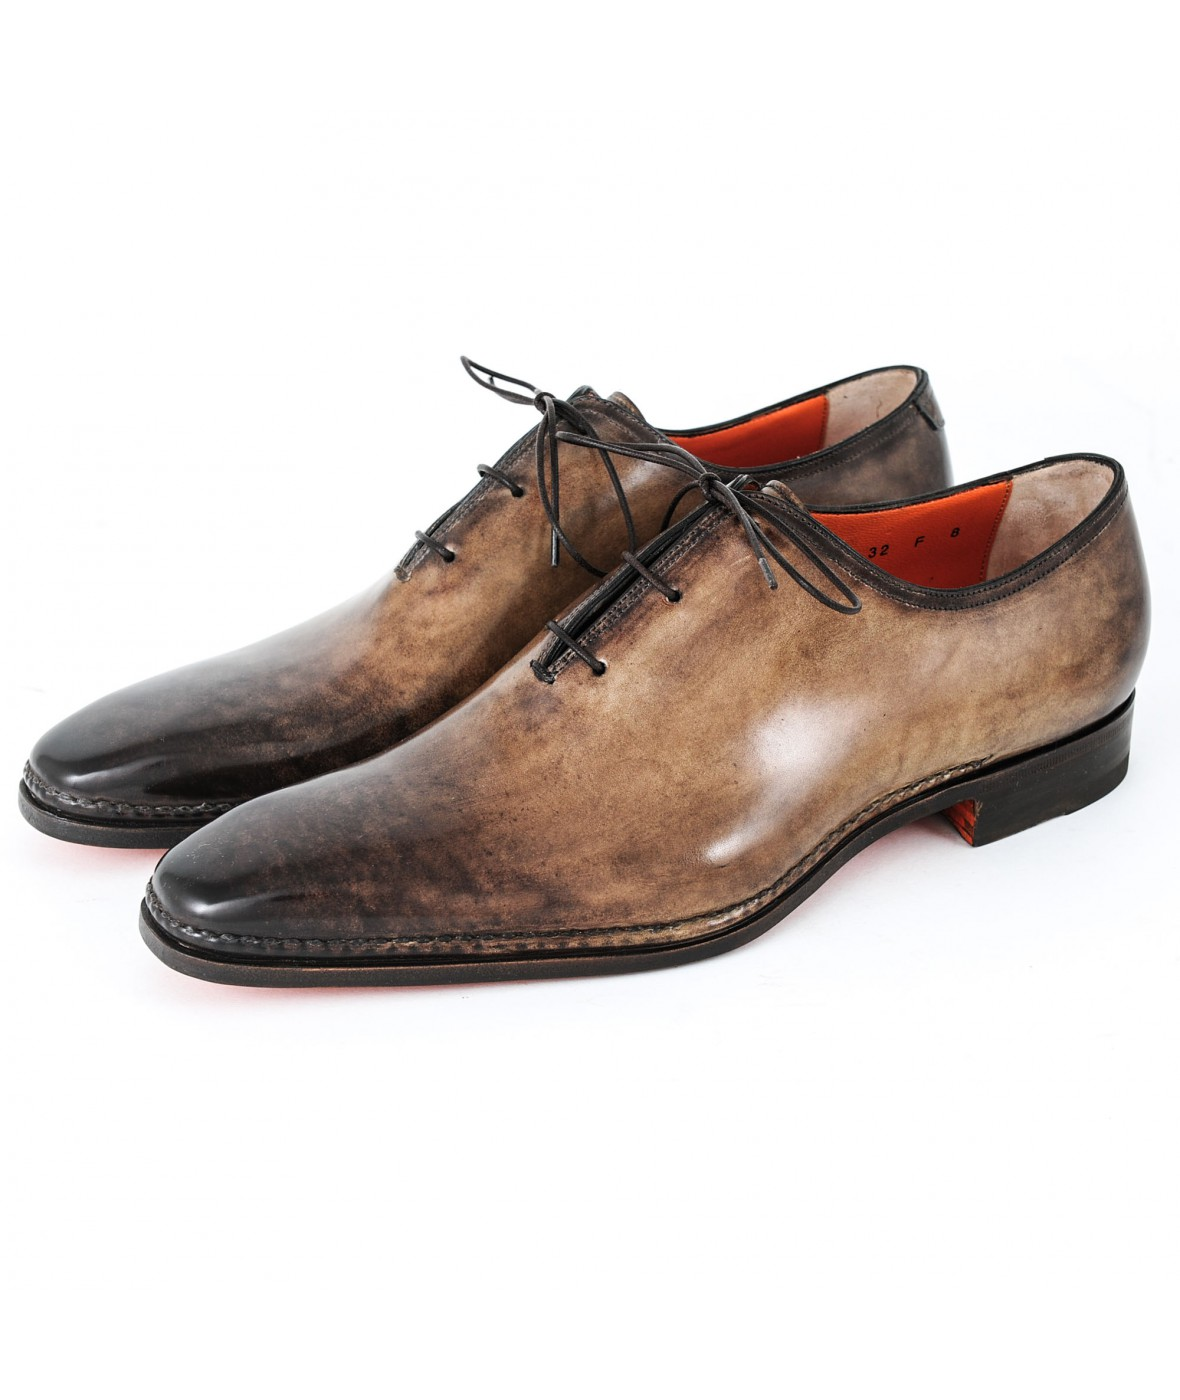 Santoni Perfetta (22876) From the end of April 2019